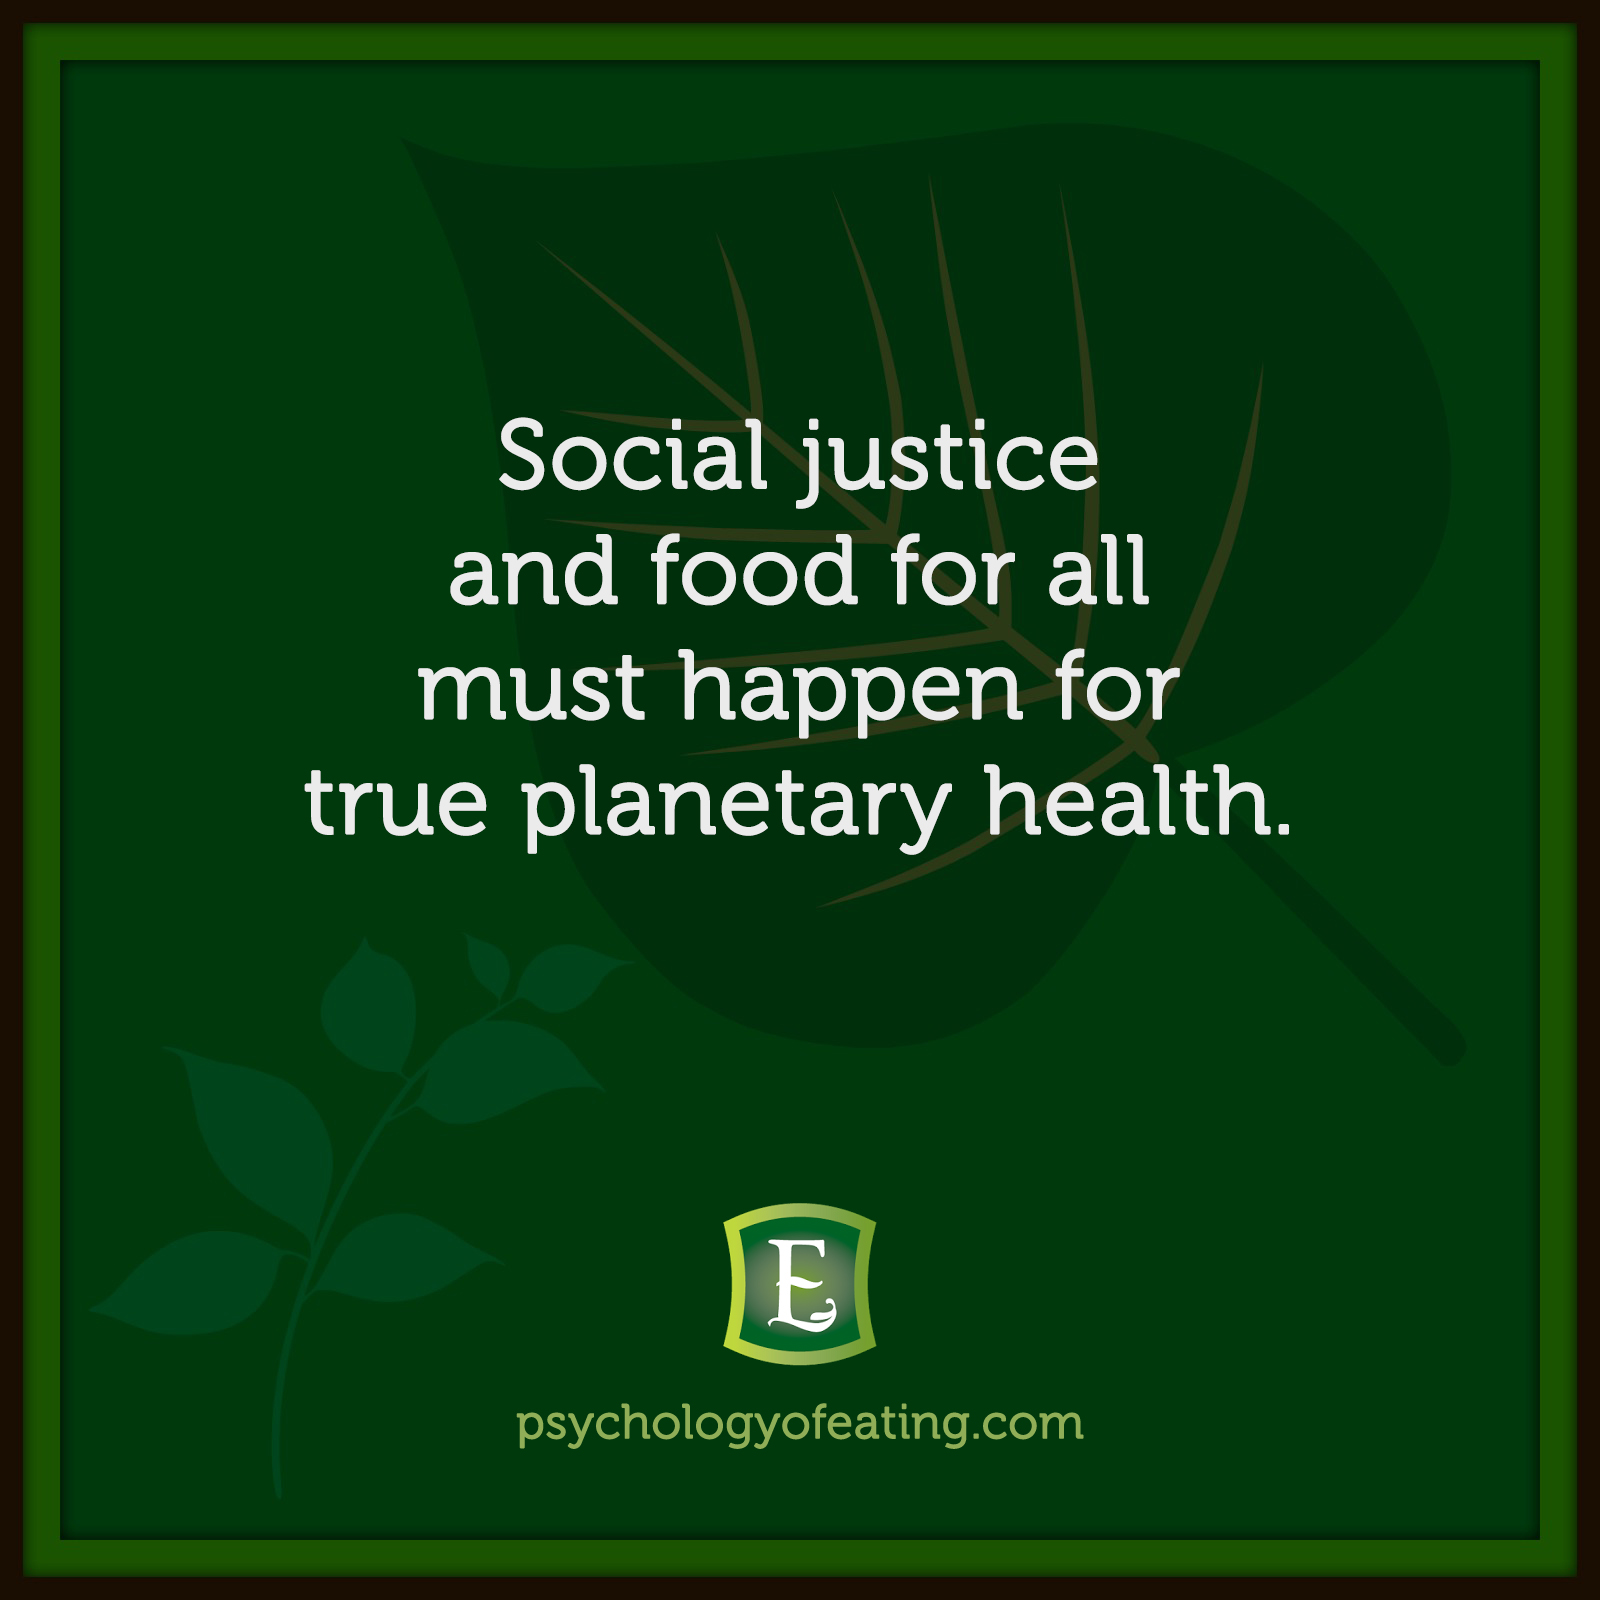 Social justice and food for all must happen for true planetary health. #health #nutrition #eatingpsychology #IPE